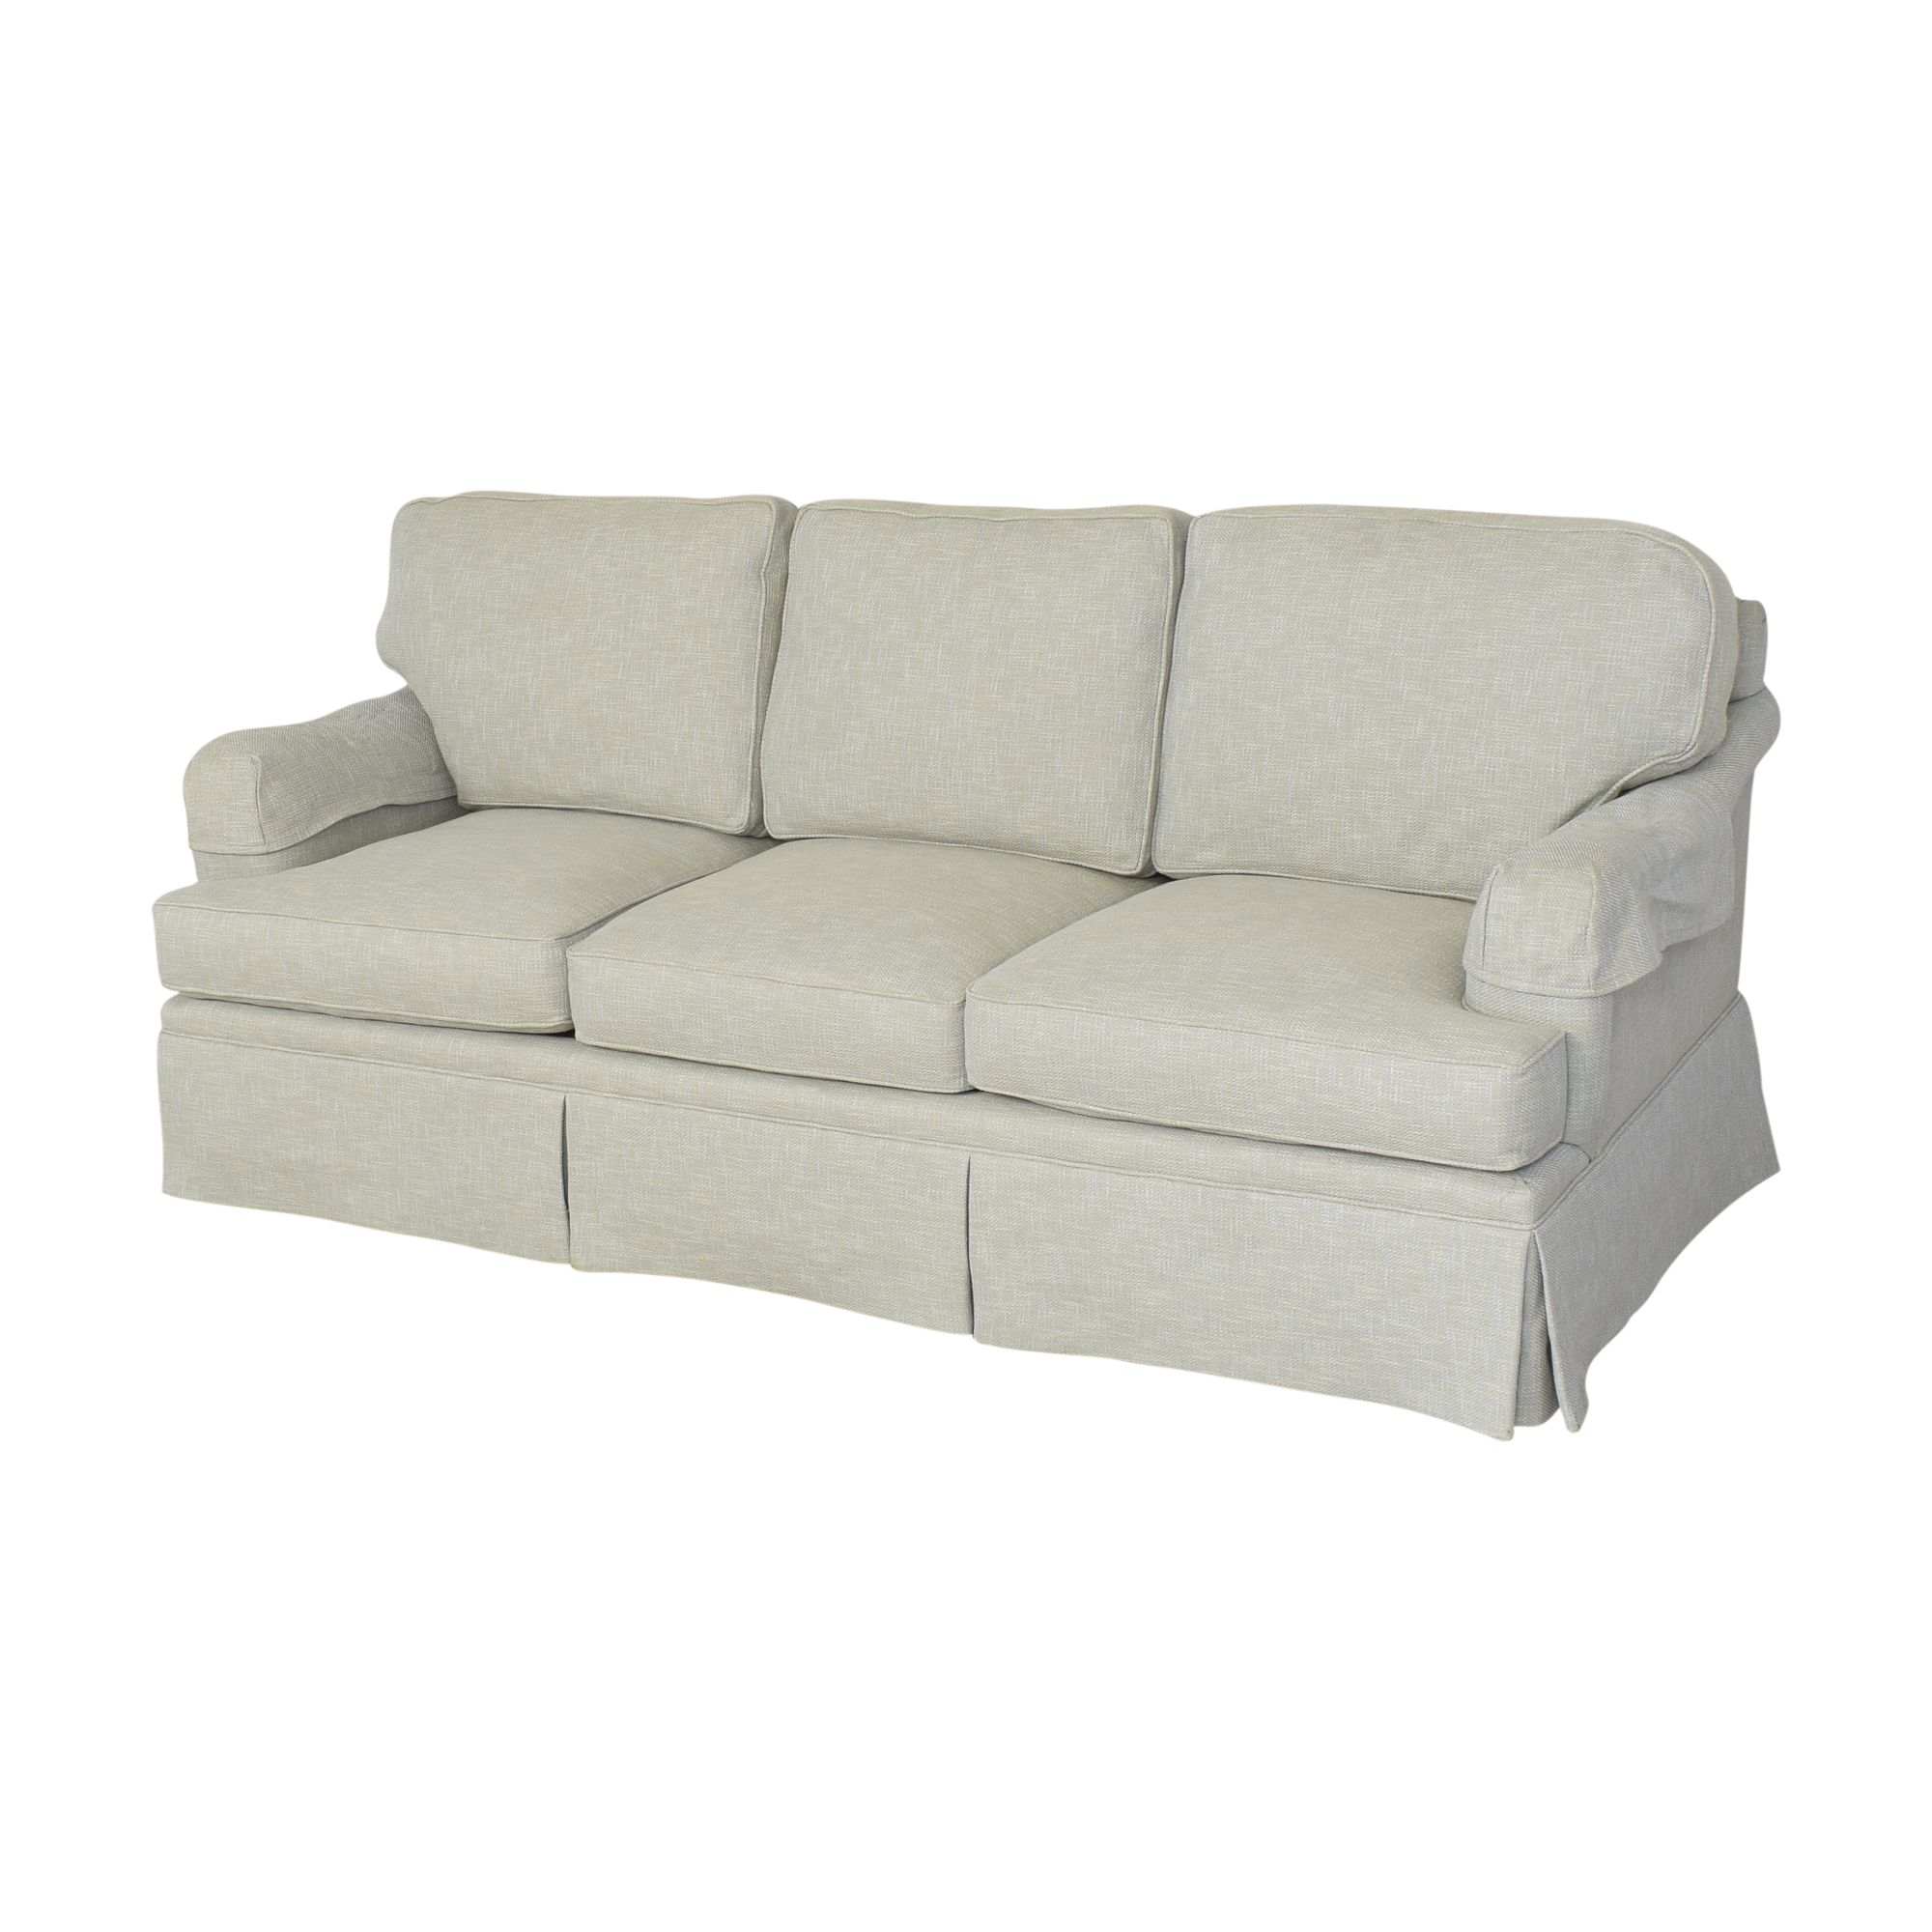 buy Henredon Furniture Henredon Upholstery Collection Sofa online